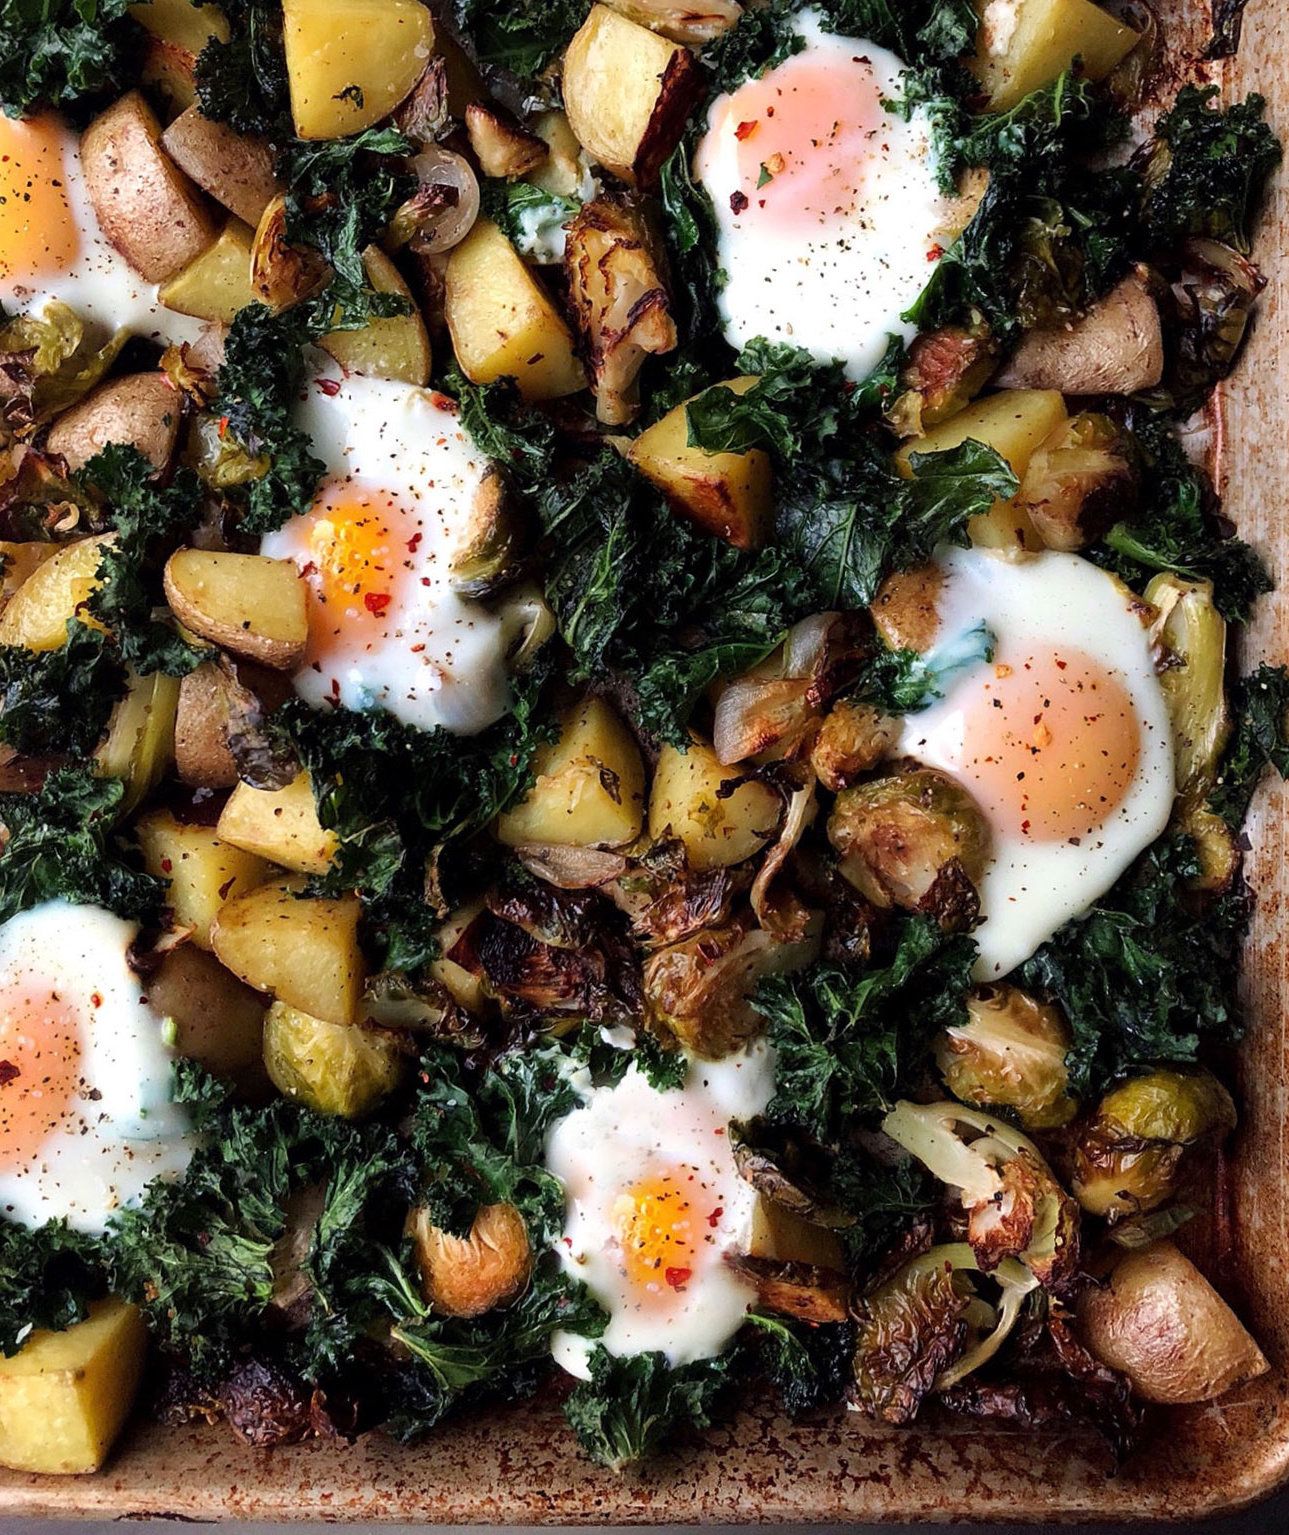 The Sheet Pan Brunch I Can't Ever Resist (and It's Perfect for Lazy Weekends)